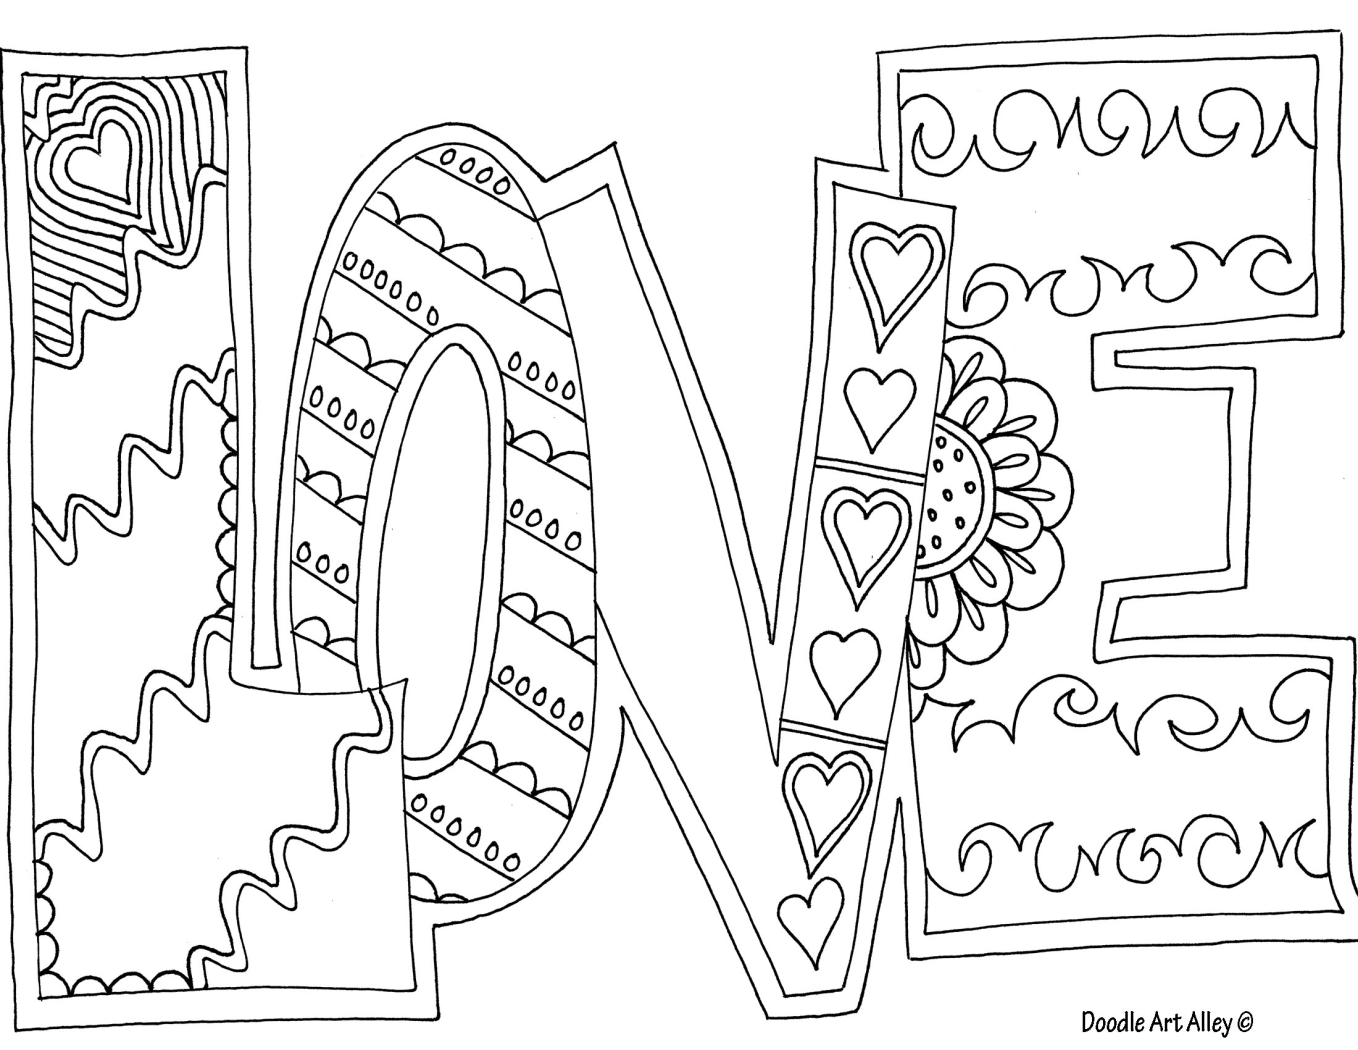 Free File Sharing And Storage Made Simple Love Coloring Pages Coloring Books Coloring Pages